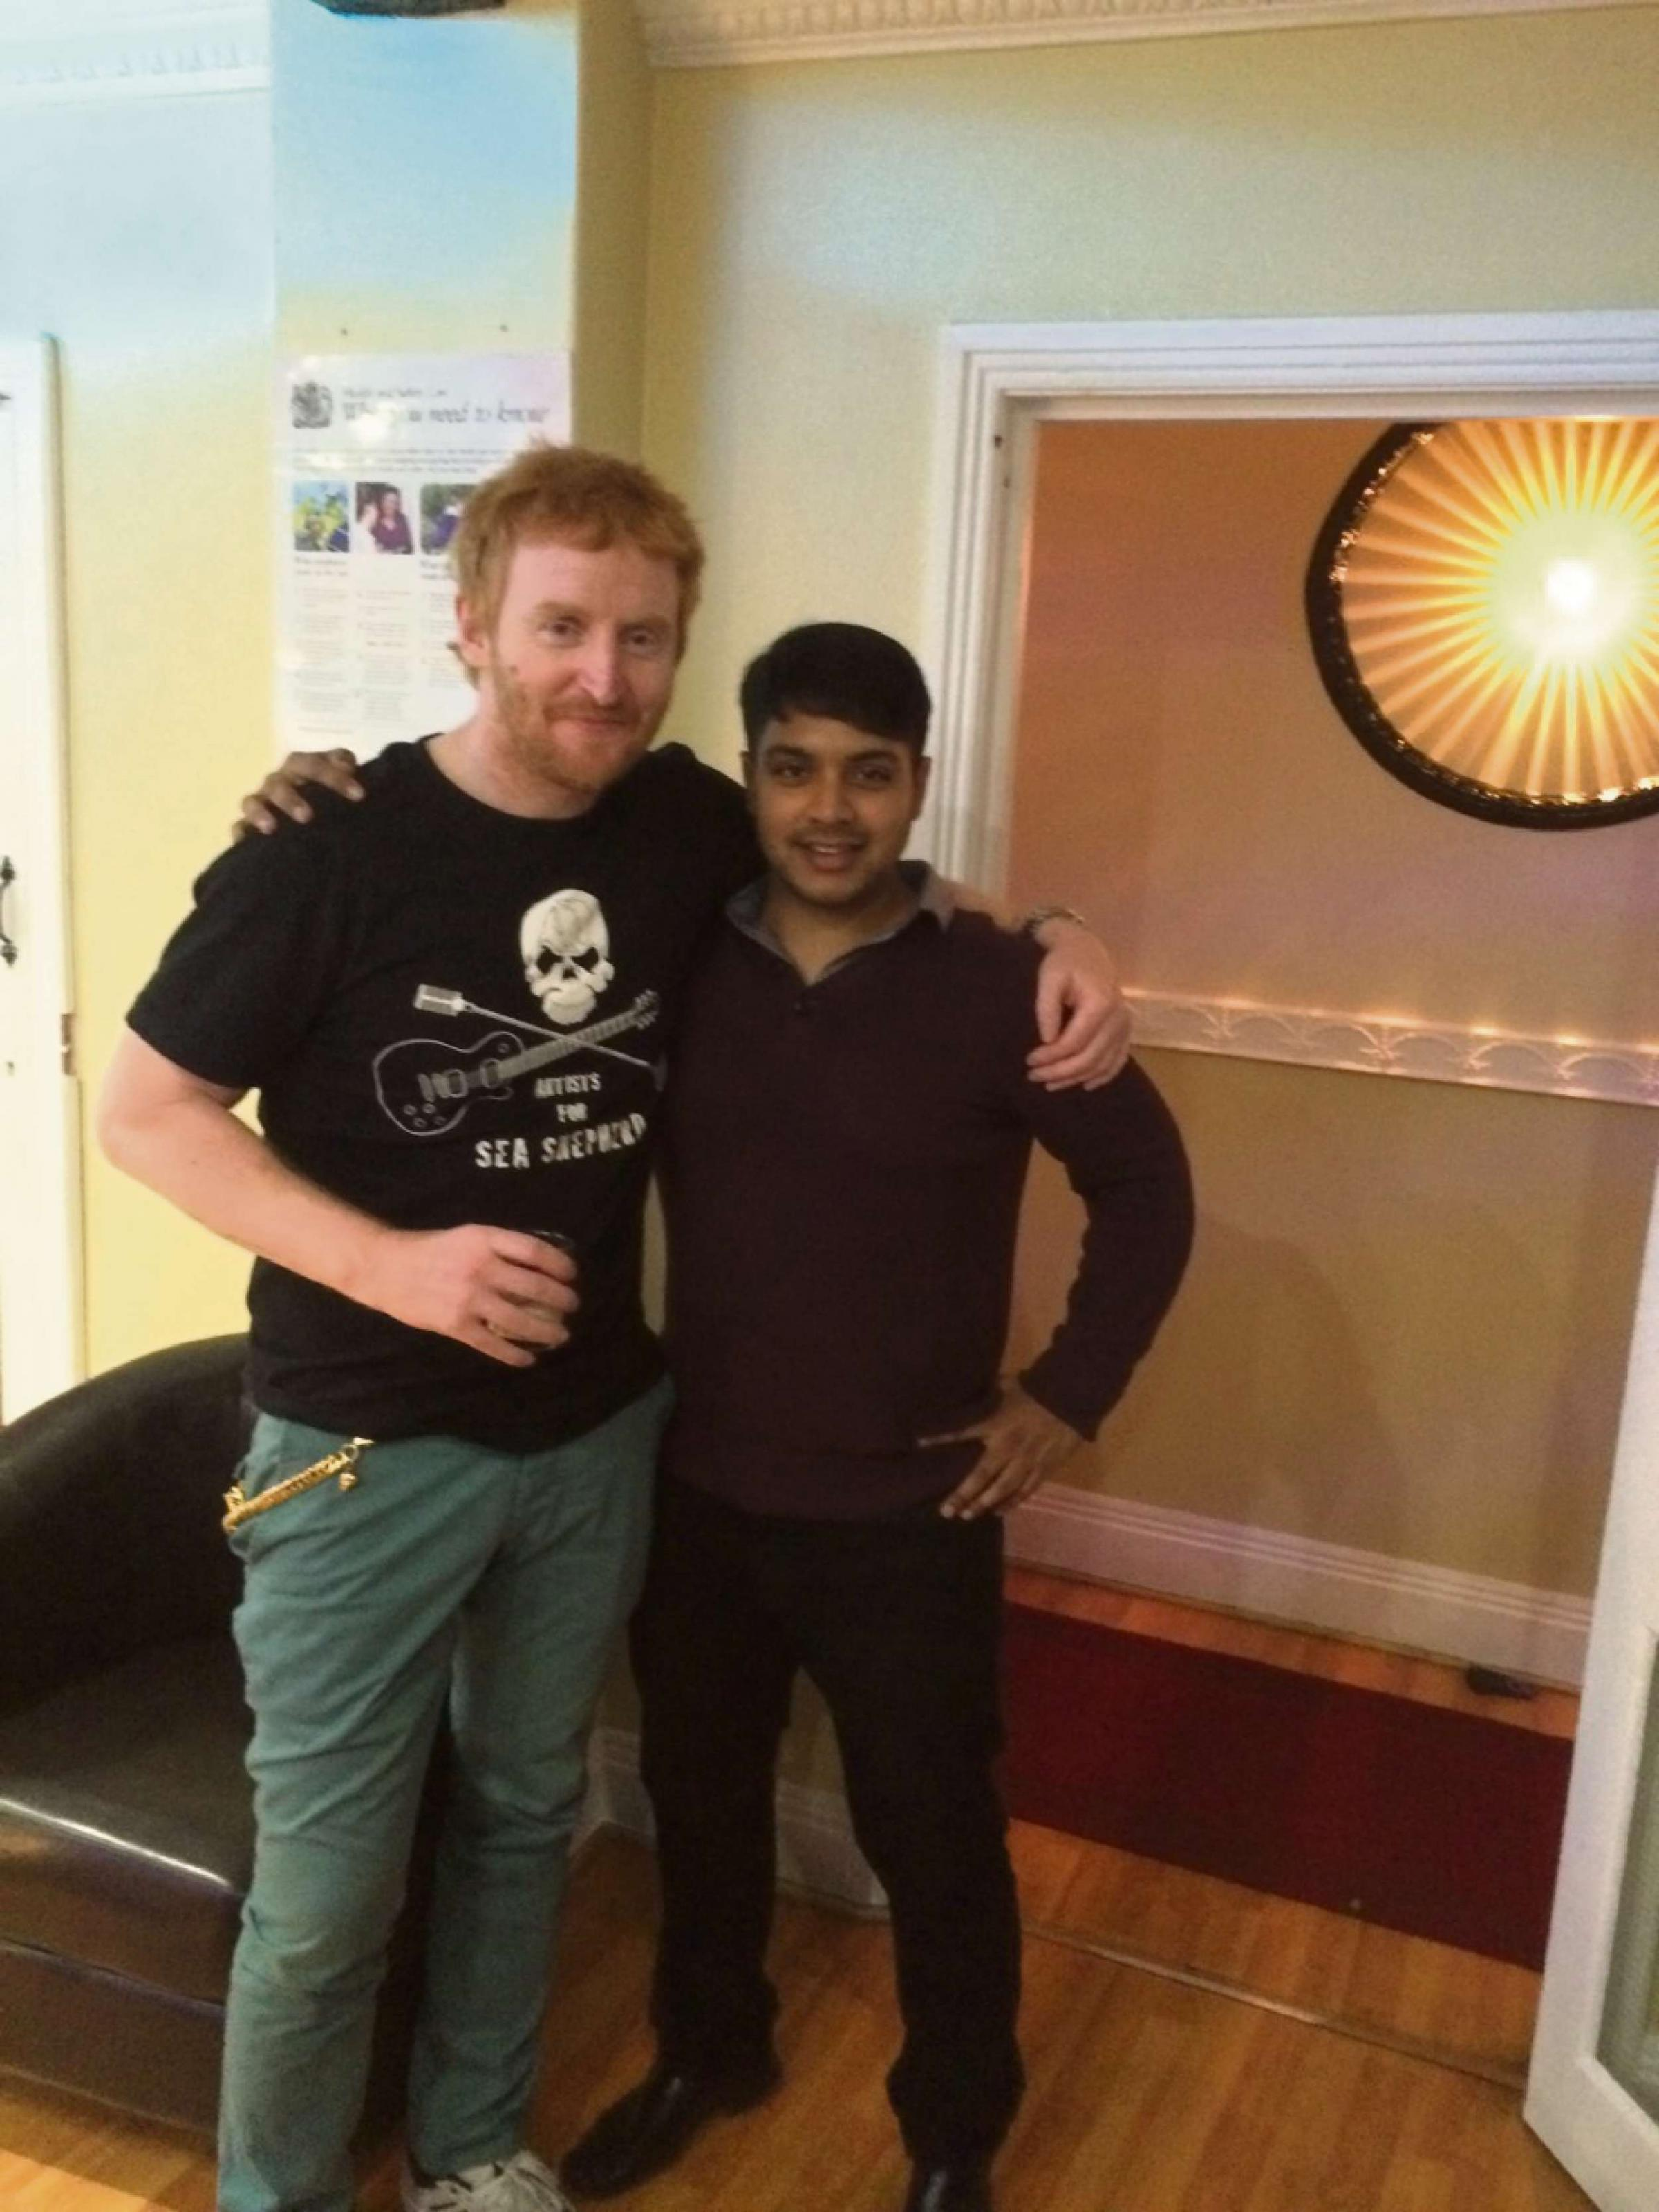 Actor Tony Curran with Raj Ahmed after enjoying a meal at The Raj restaurant in York